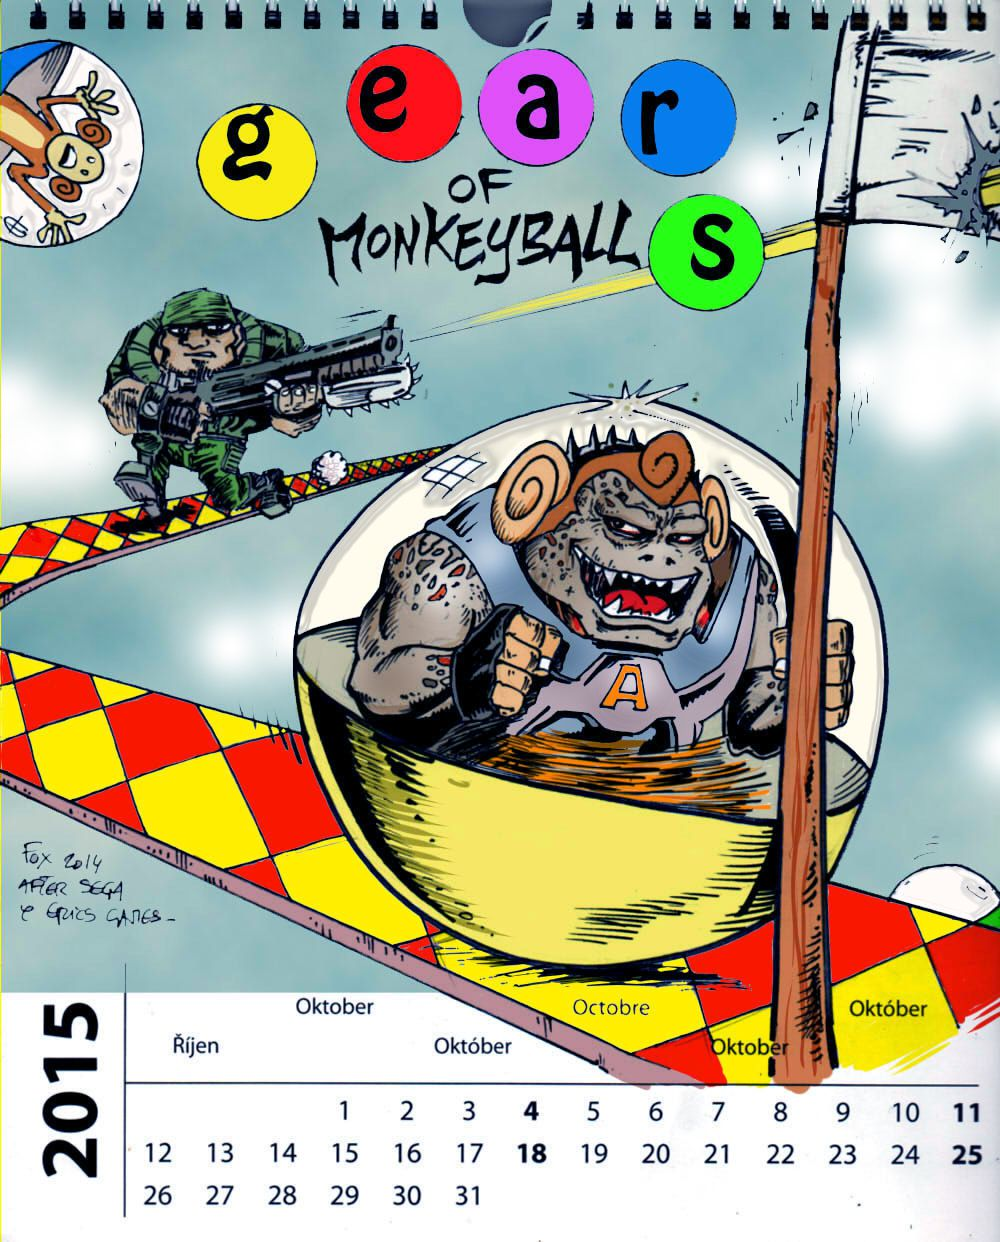 calendrier octobre (gears of monkeyball ) colo